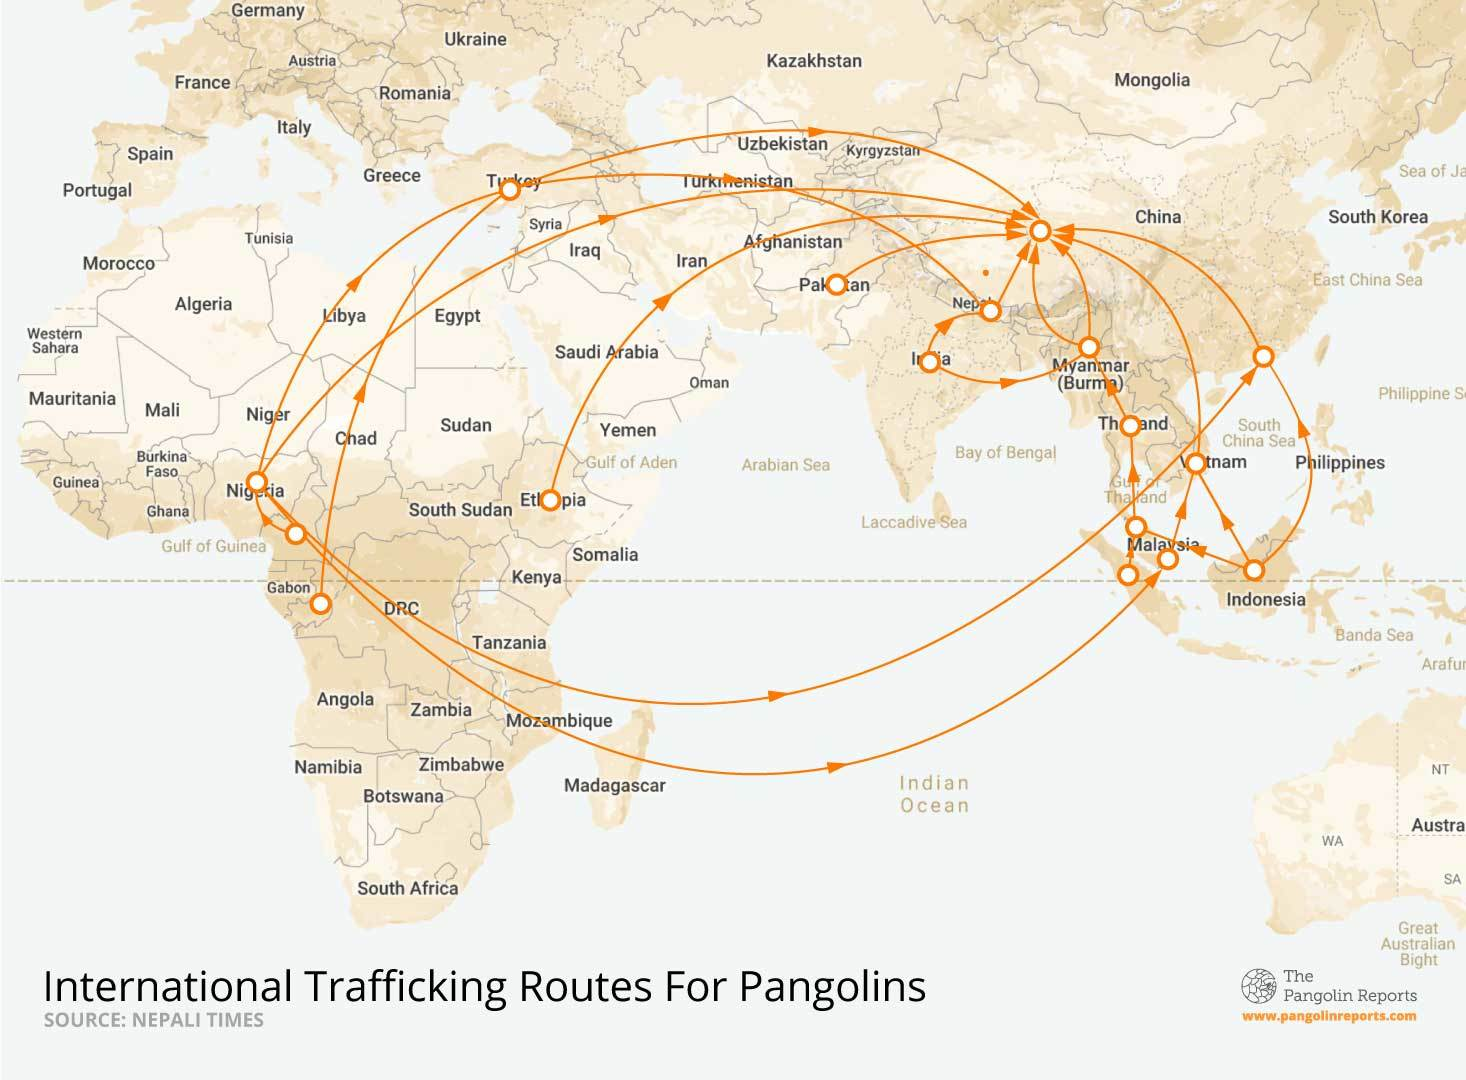 This map depicts the international routes used to traffic pangolins, spanning mostly within Africa and Asia.